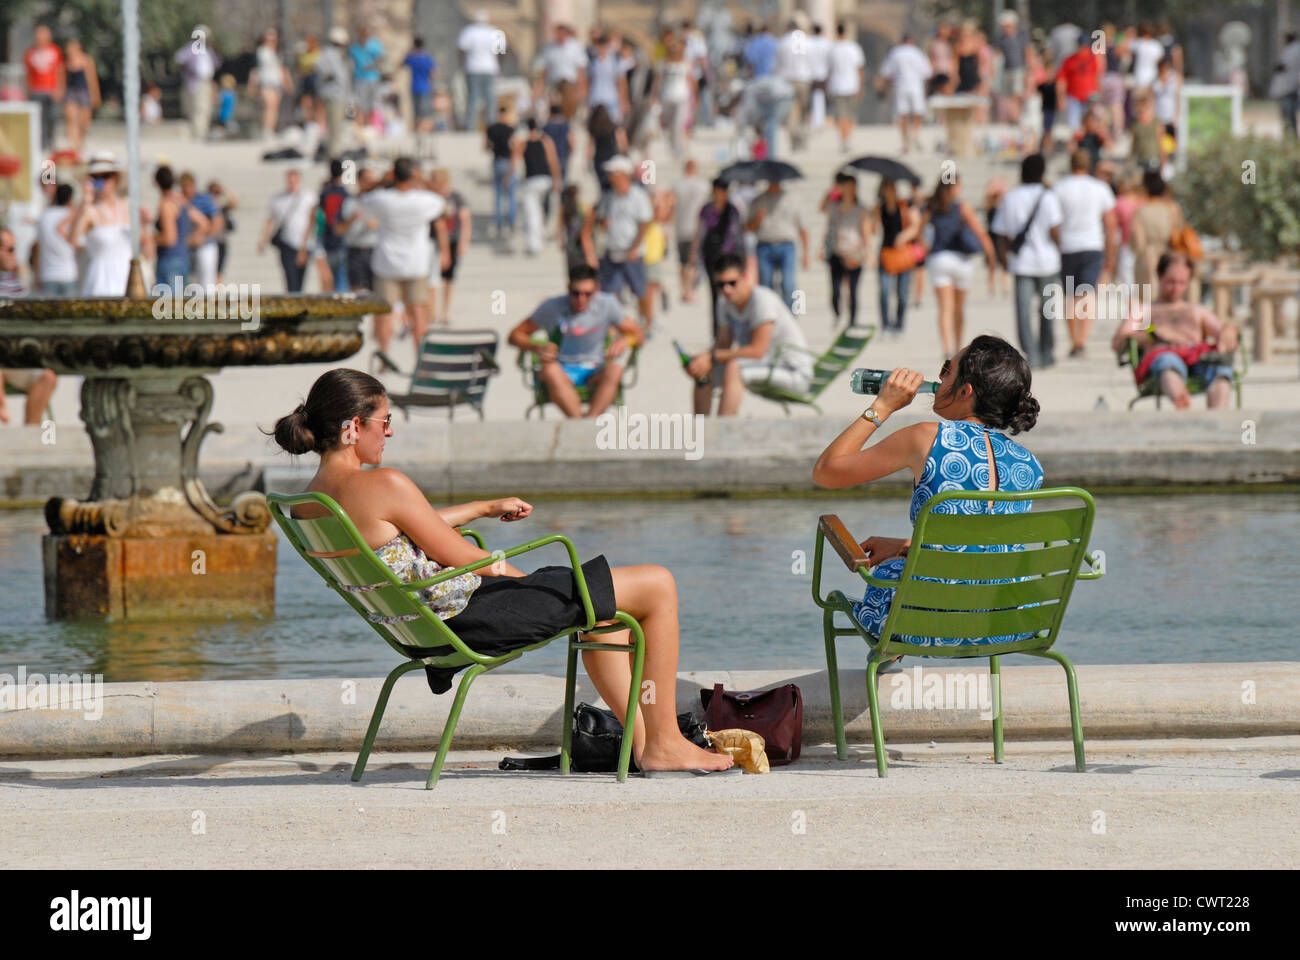 Paris, France. Jardin des Tuileries. Two young women relaxing on a very hot day - Stock Image